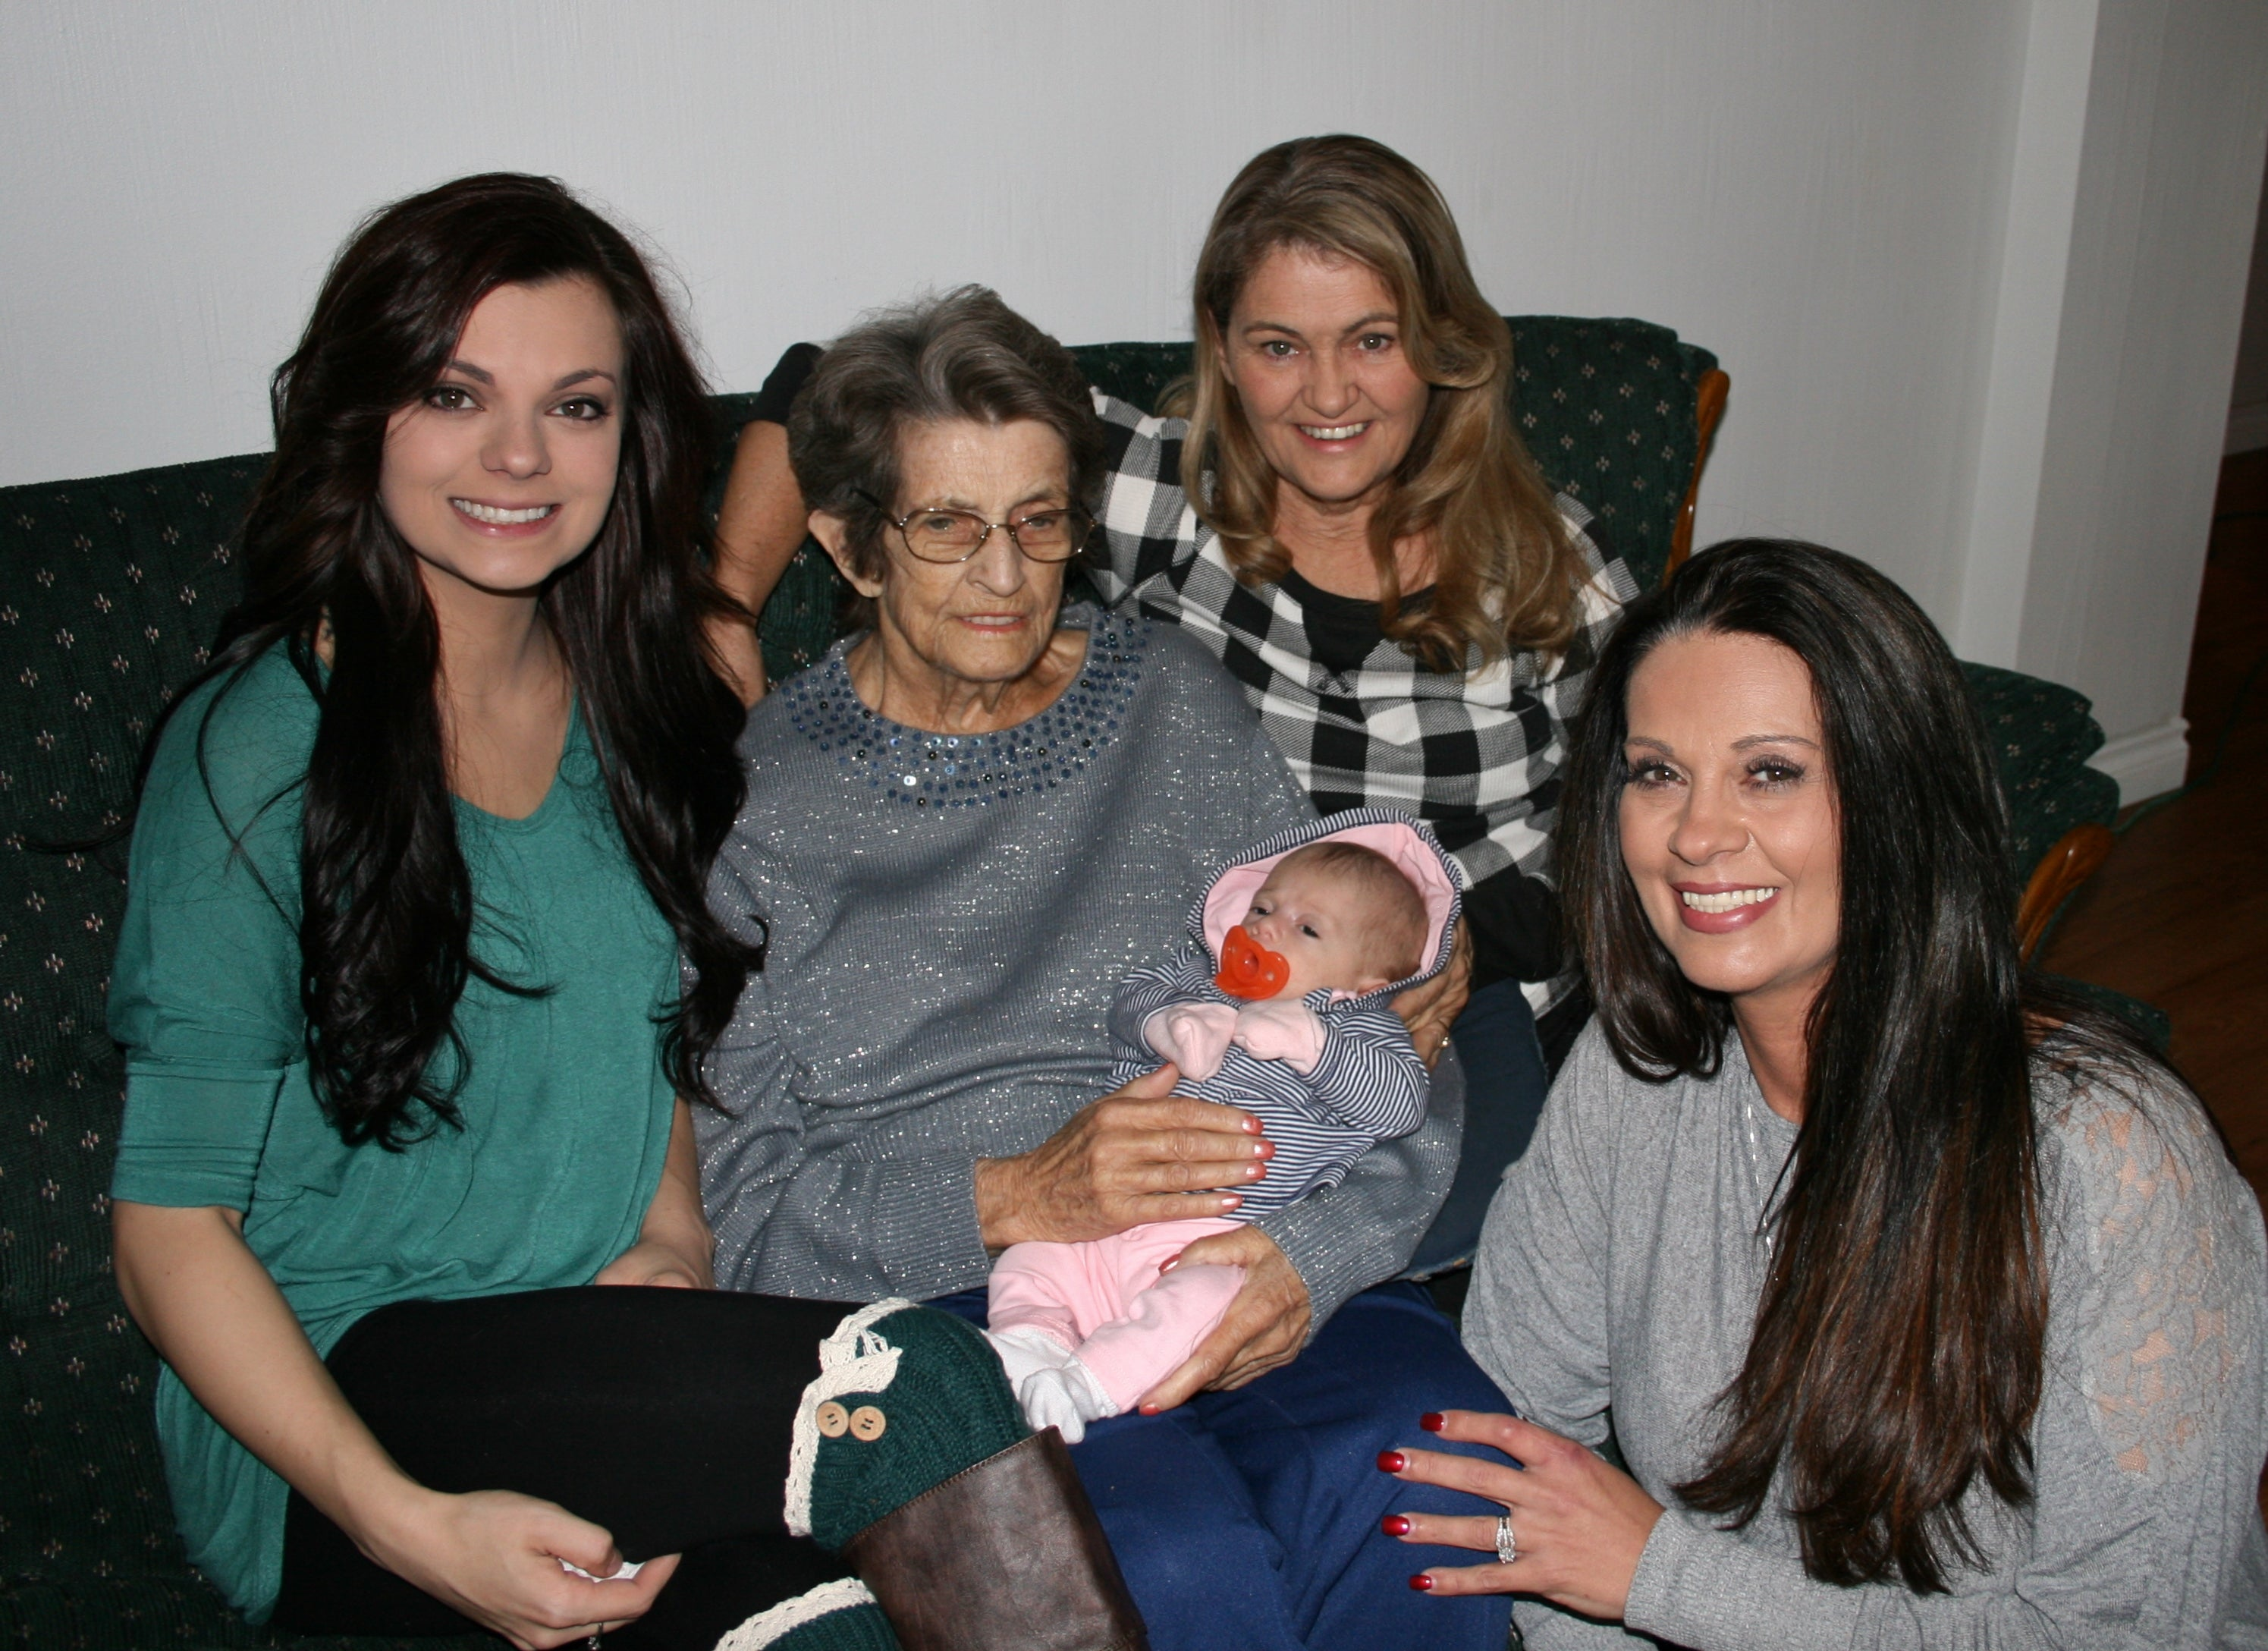 Five generations of strong women